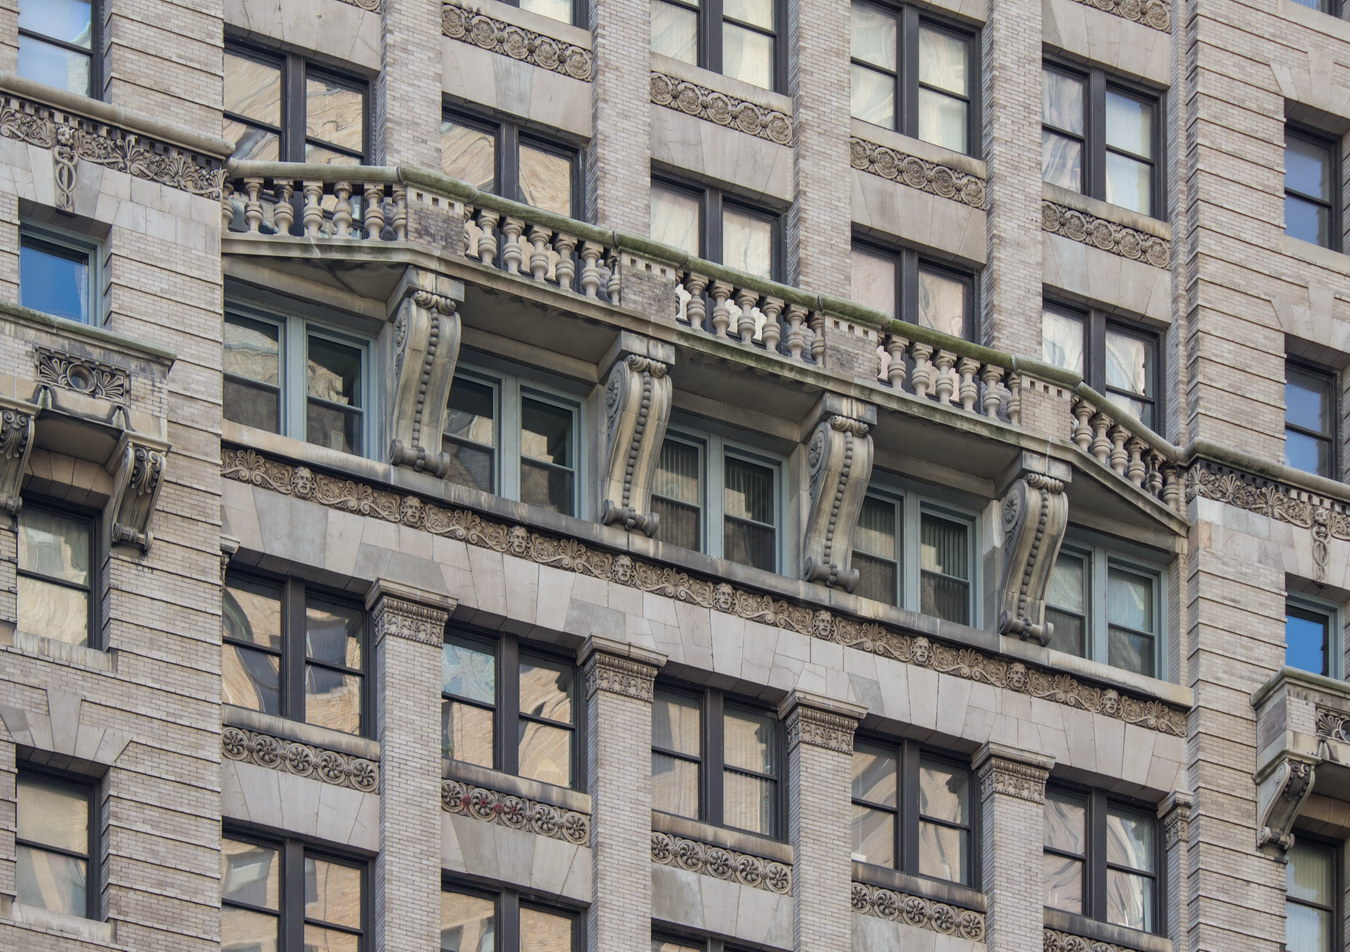 The balconies are strictly decorative.